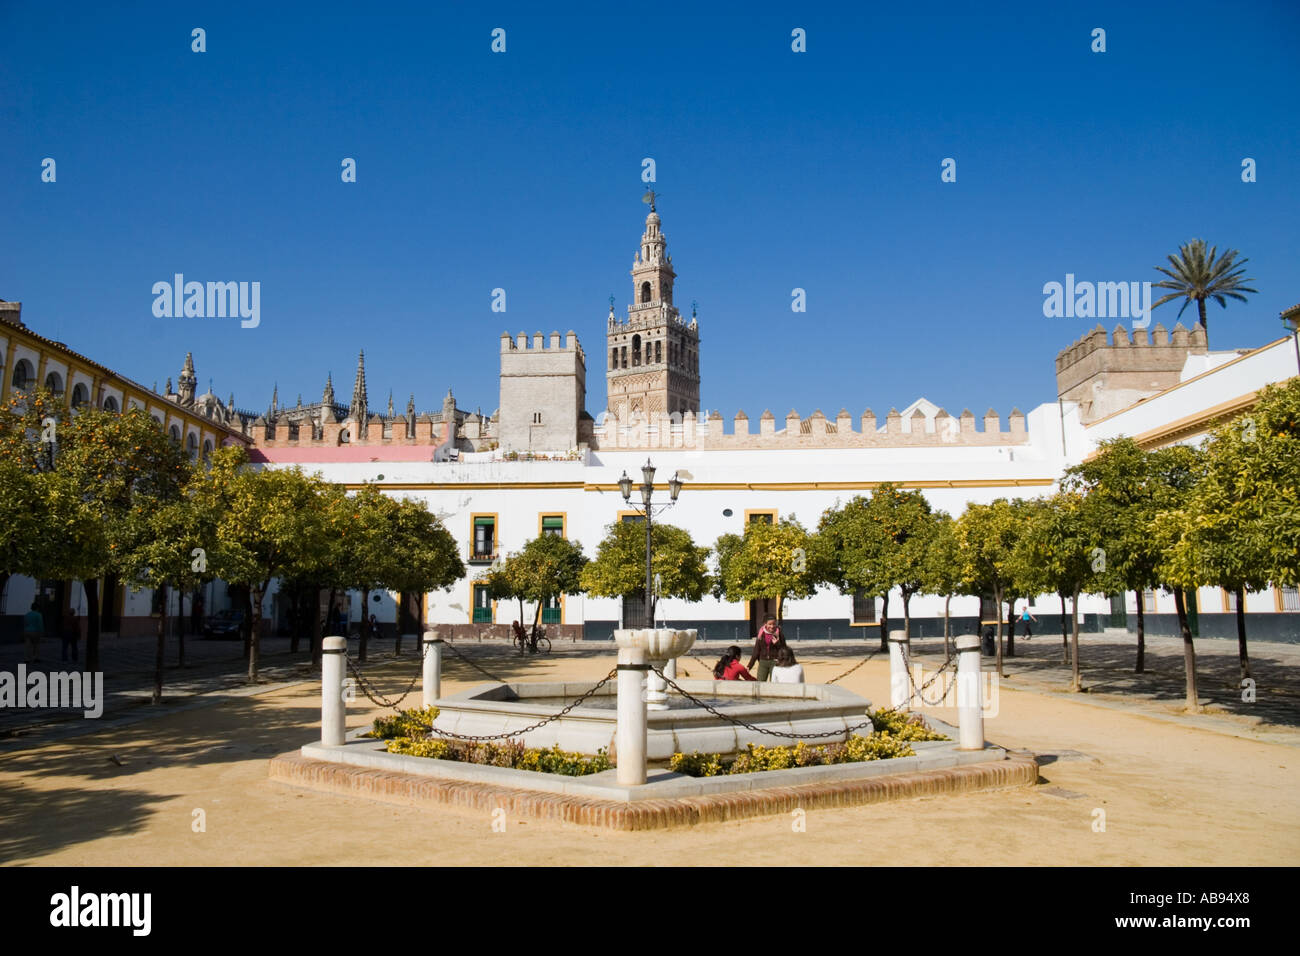 Orange Trees Line The Patio De Las Banderas With The Giralda In The